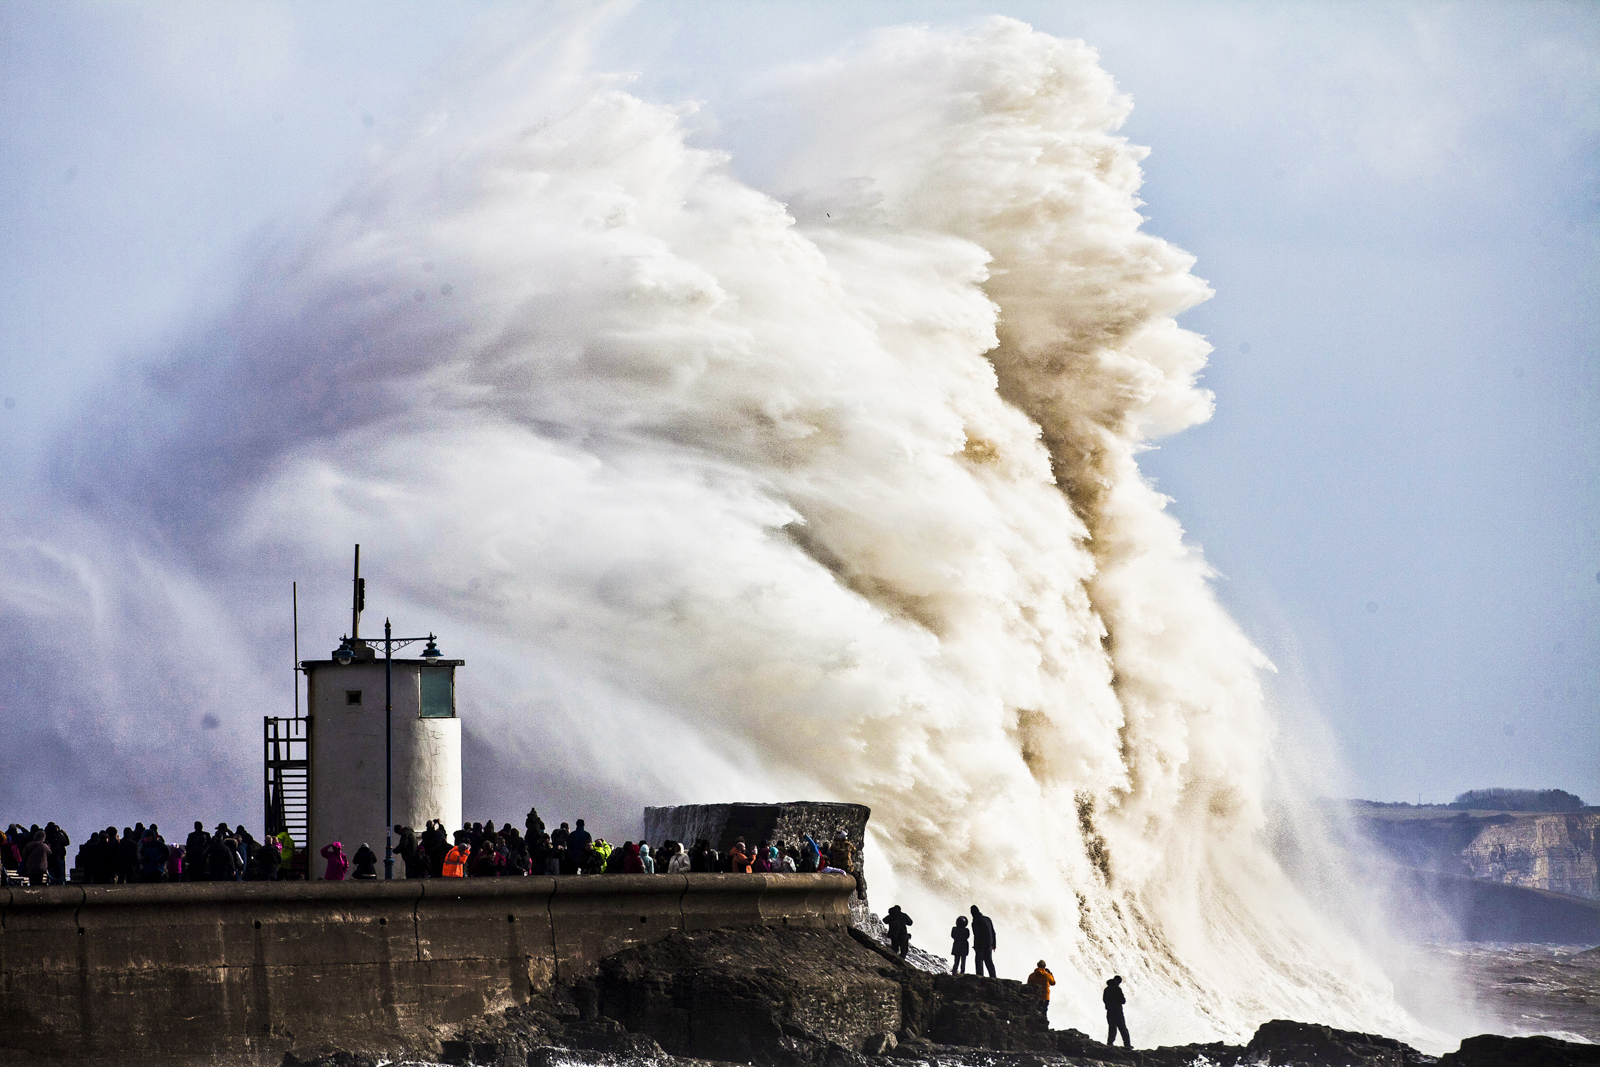 Gigantic waves hit the sea wall at Porthcawl in South Wales